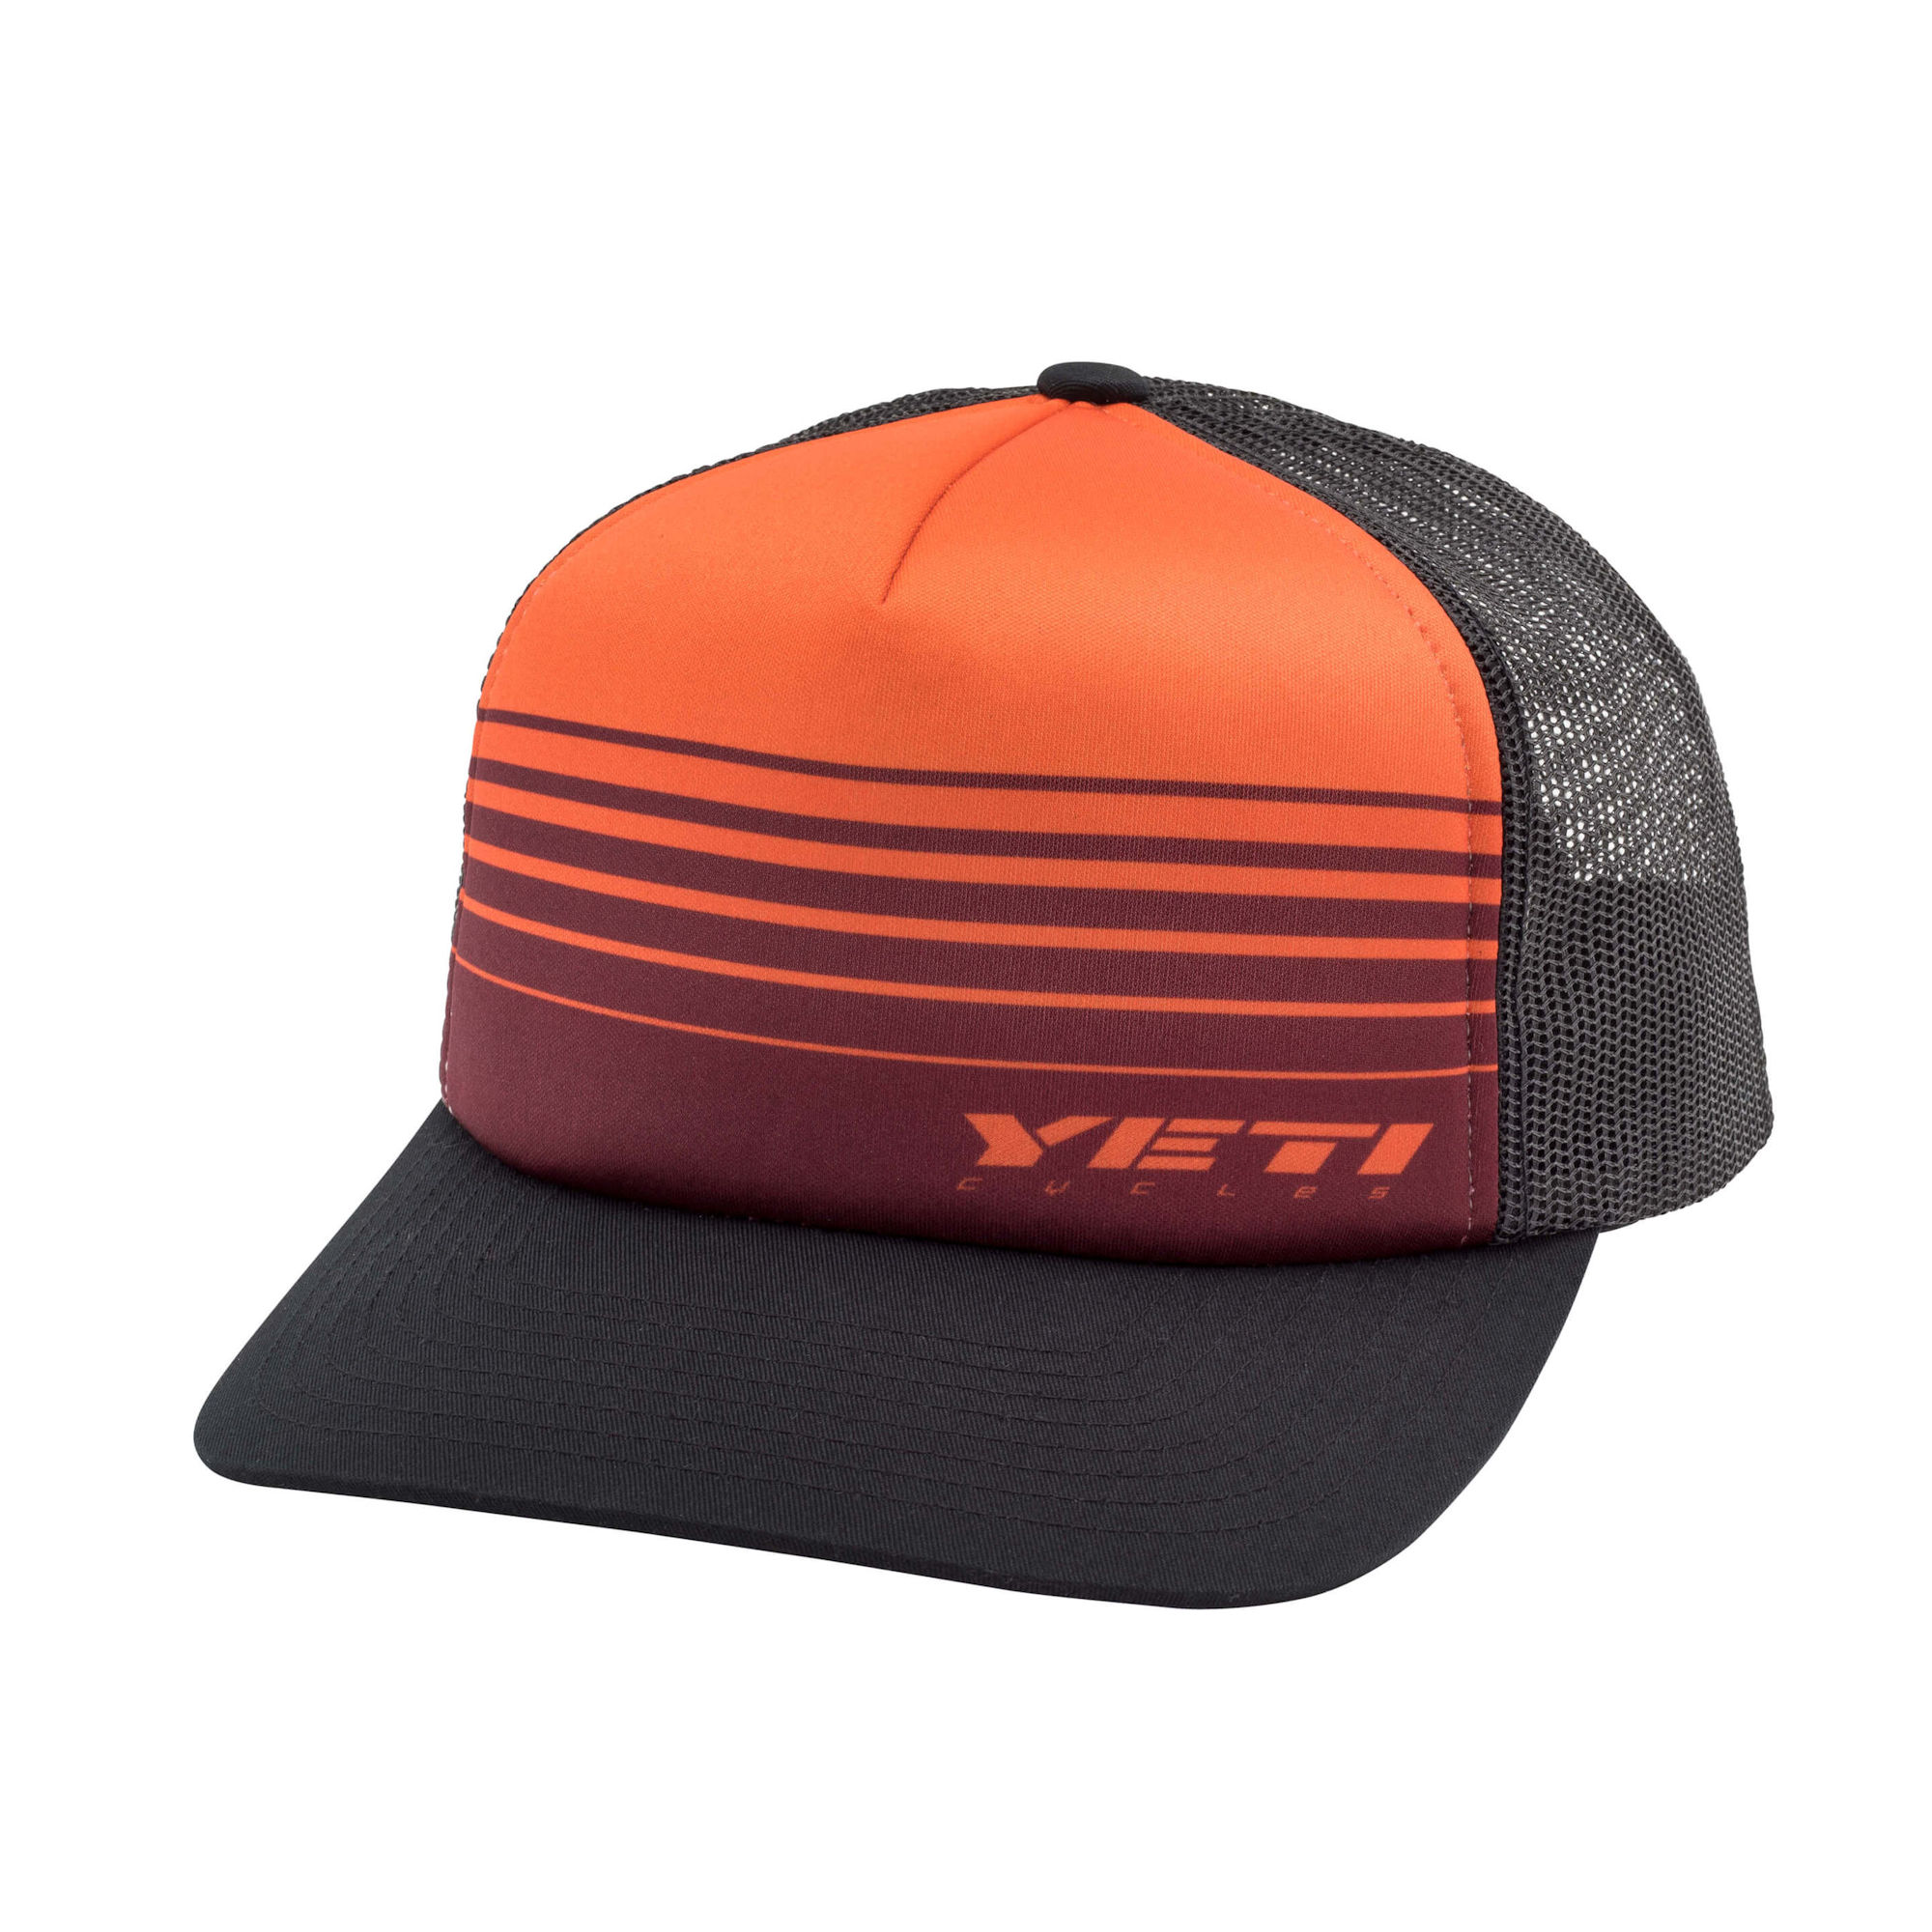 Yeti Race Stripes Foam Trucker Hat Orange   Black. YC200091864. Previous 0704822bec3f